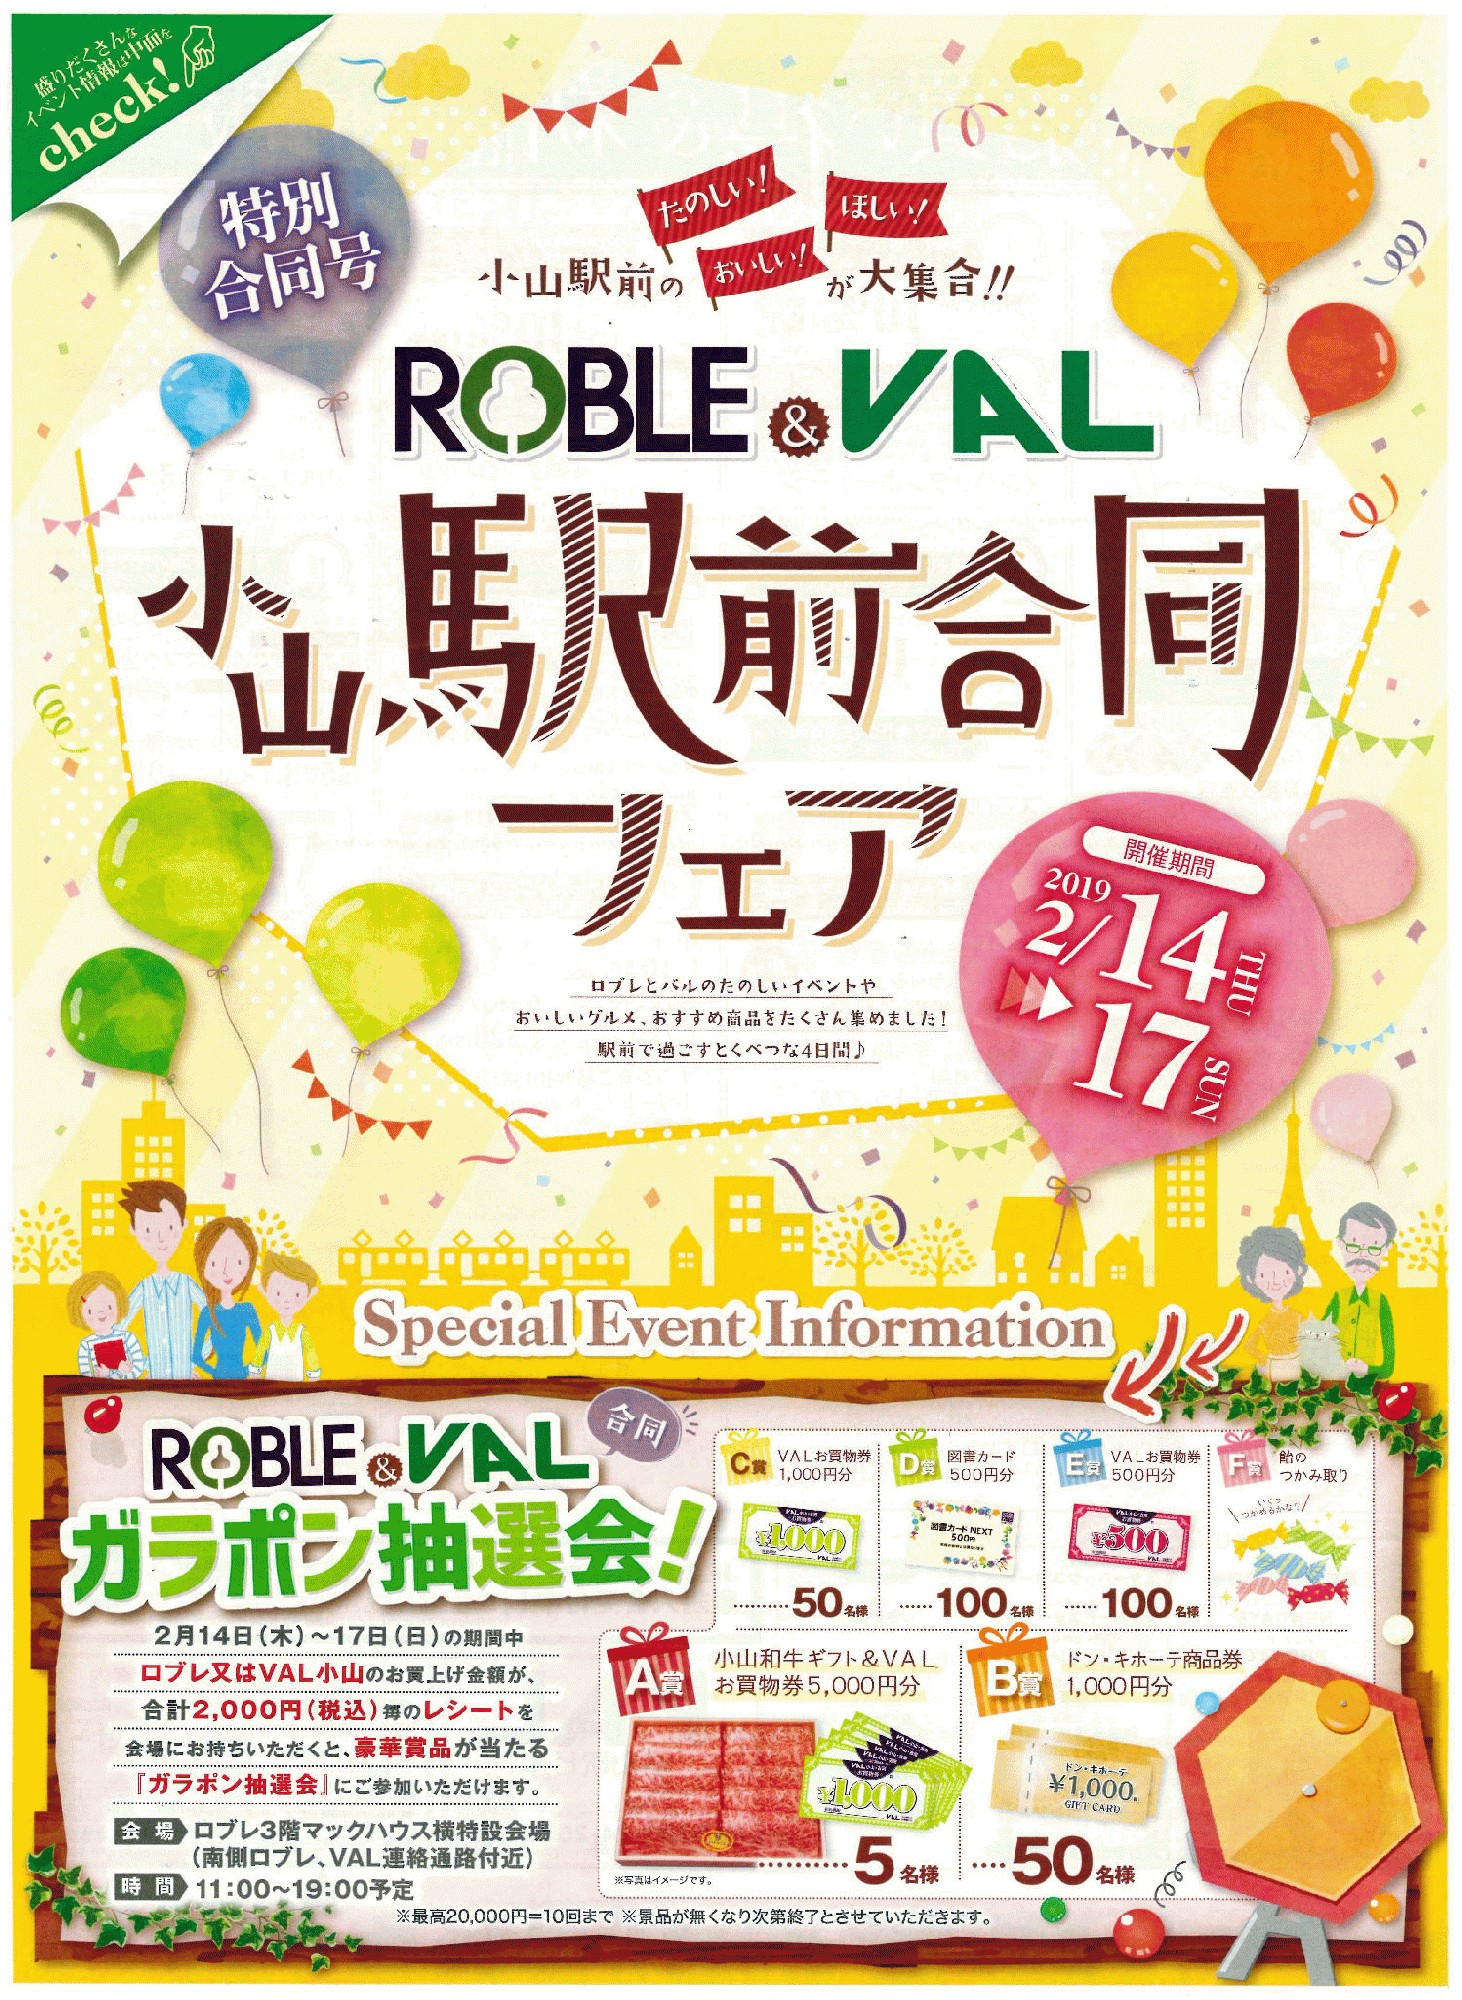 ROBLE&VAL 「小山駅前合同フェア」 開催中!!